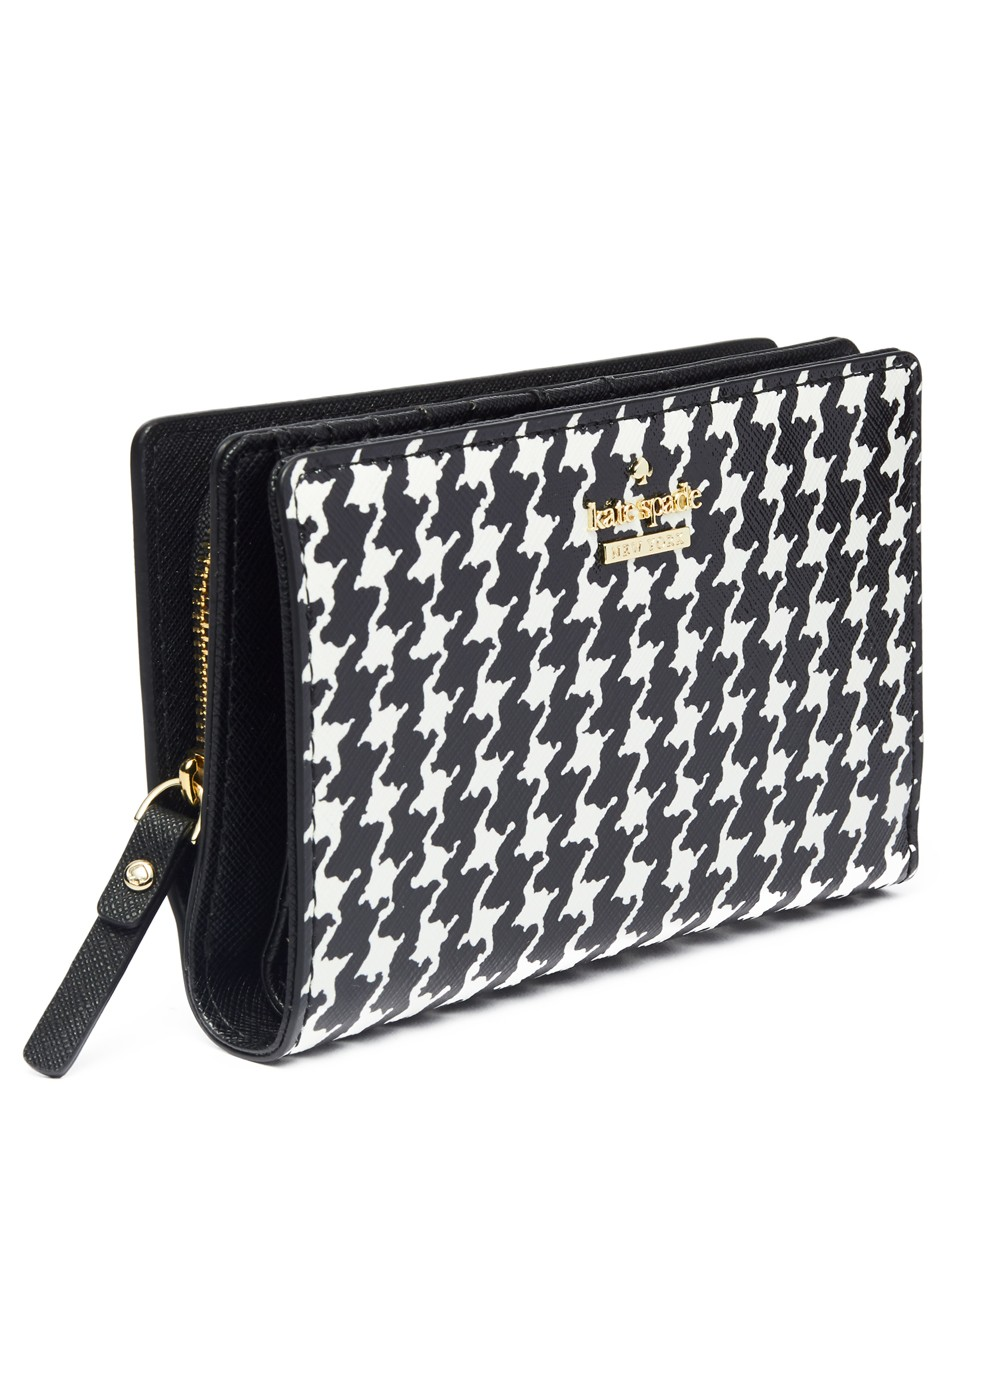 【最大48%OFF】【'19春夏新作】CAMERON STREET HOUNDSTOOTH DARA|BLACK/CREAM|レディース財布|kate spade new york - wallet and more